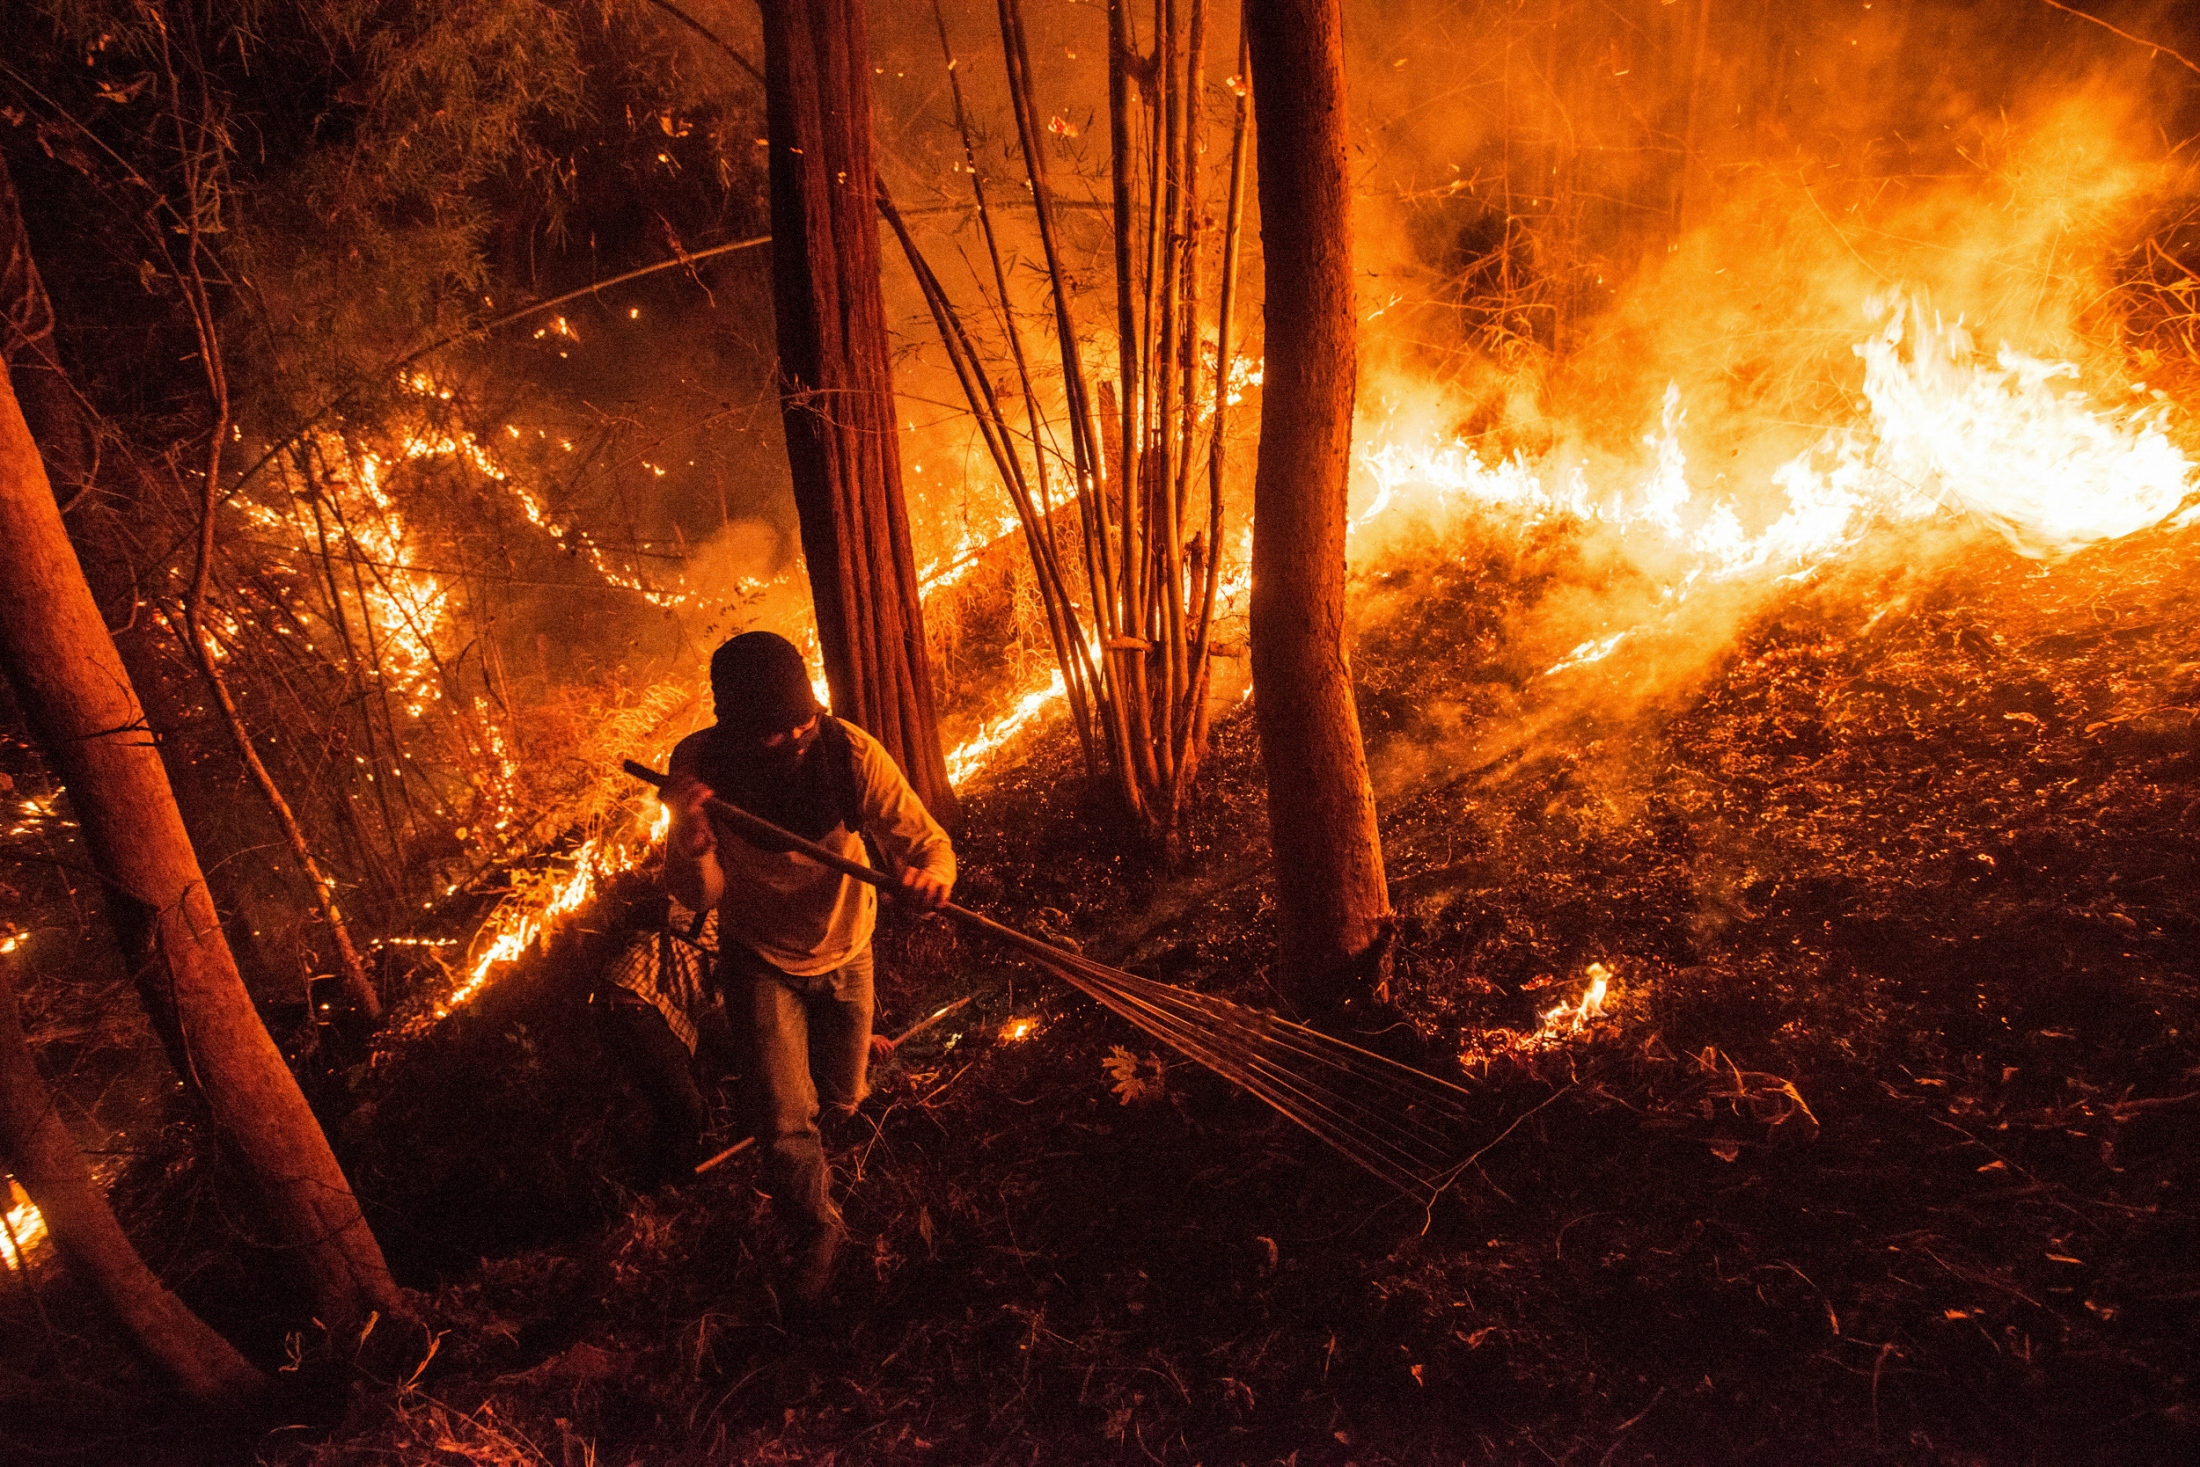 A firefighter hikes through a forest fire to control the spread of fire occurred during the night time by making a firebreak. 99% of the annual wildfires are caused by humans.